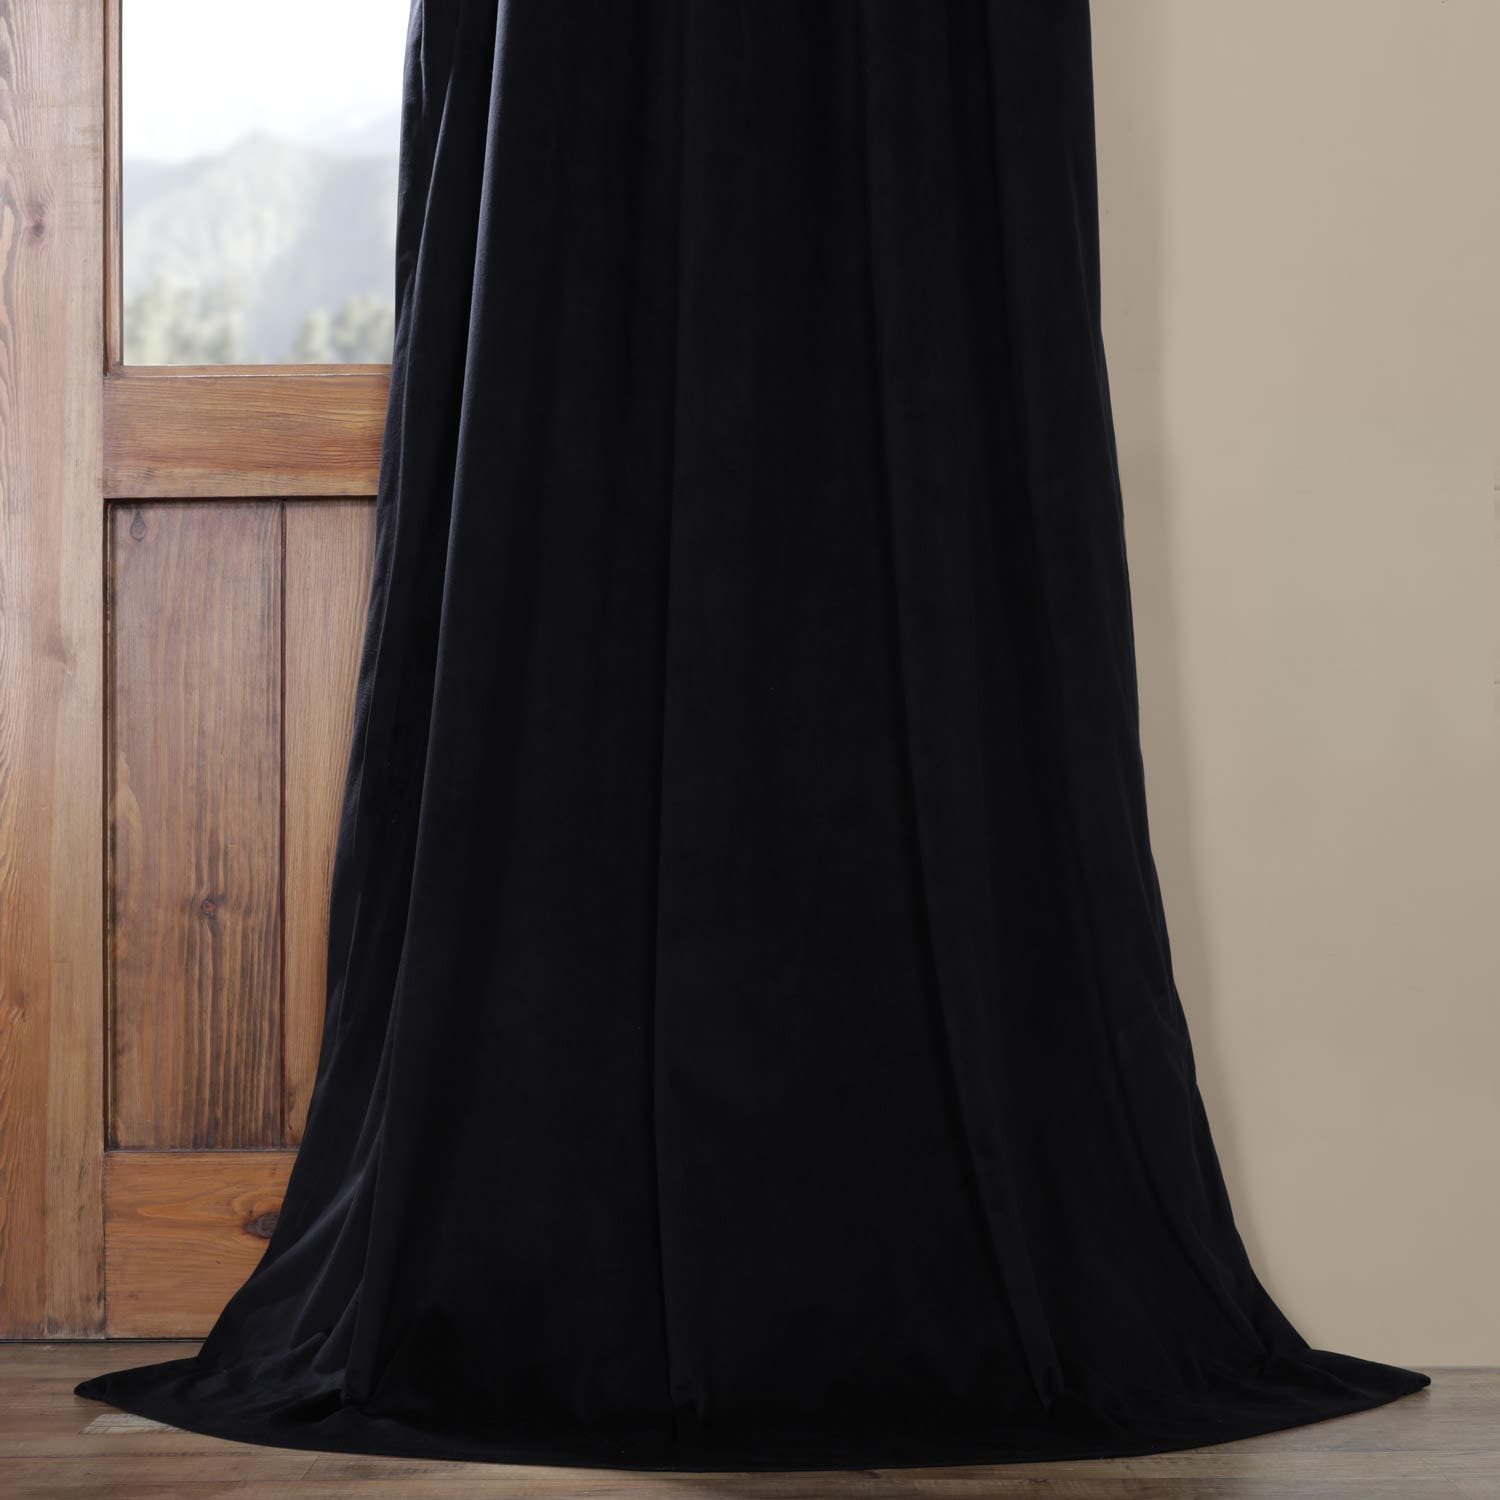 Details About Pleated Signature Blackout Velvet Curtain (So Intended For Signature Pinch Pleated Blackout Solid Velvet Curtain Panels (View 5 of 36)